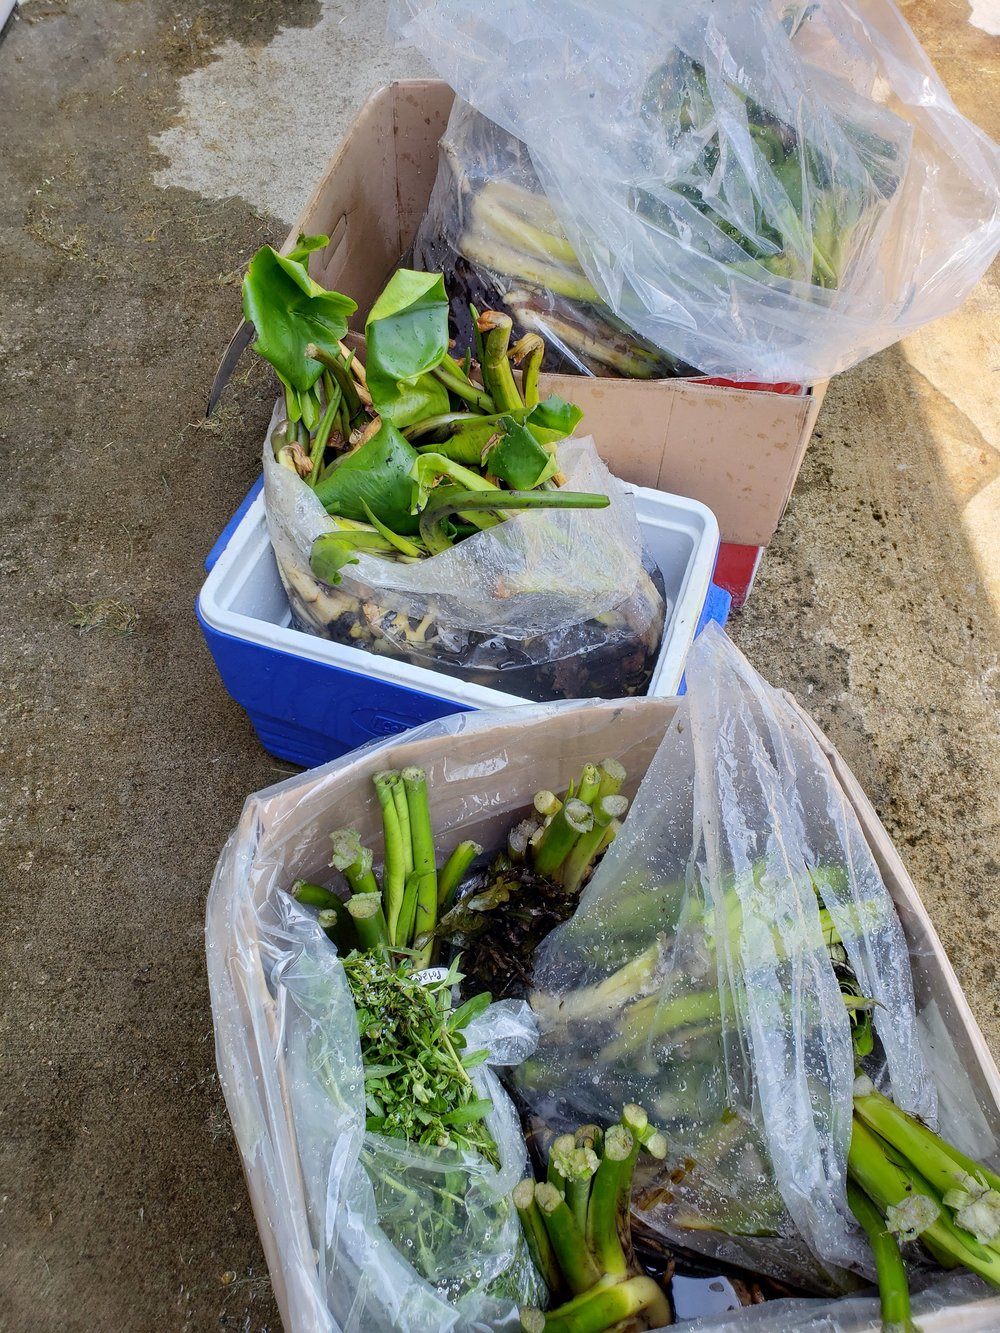 Aquatic plants arrive from Balance Restoration Nursery, Lorane, OR